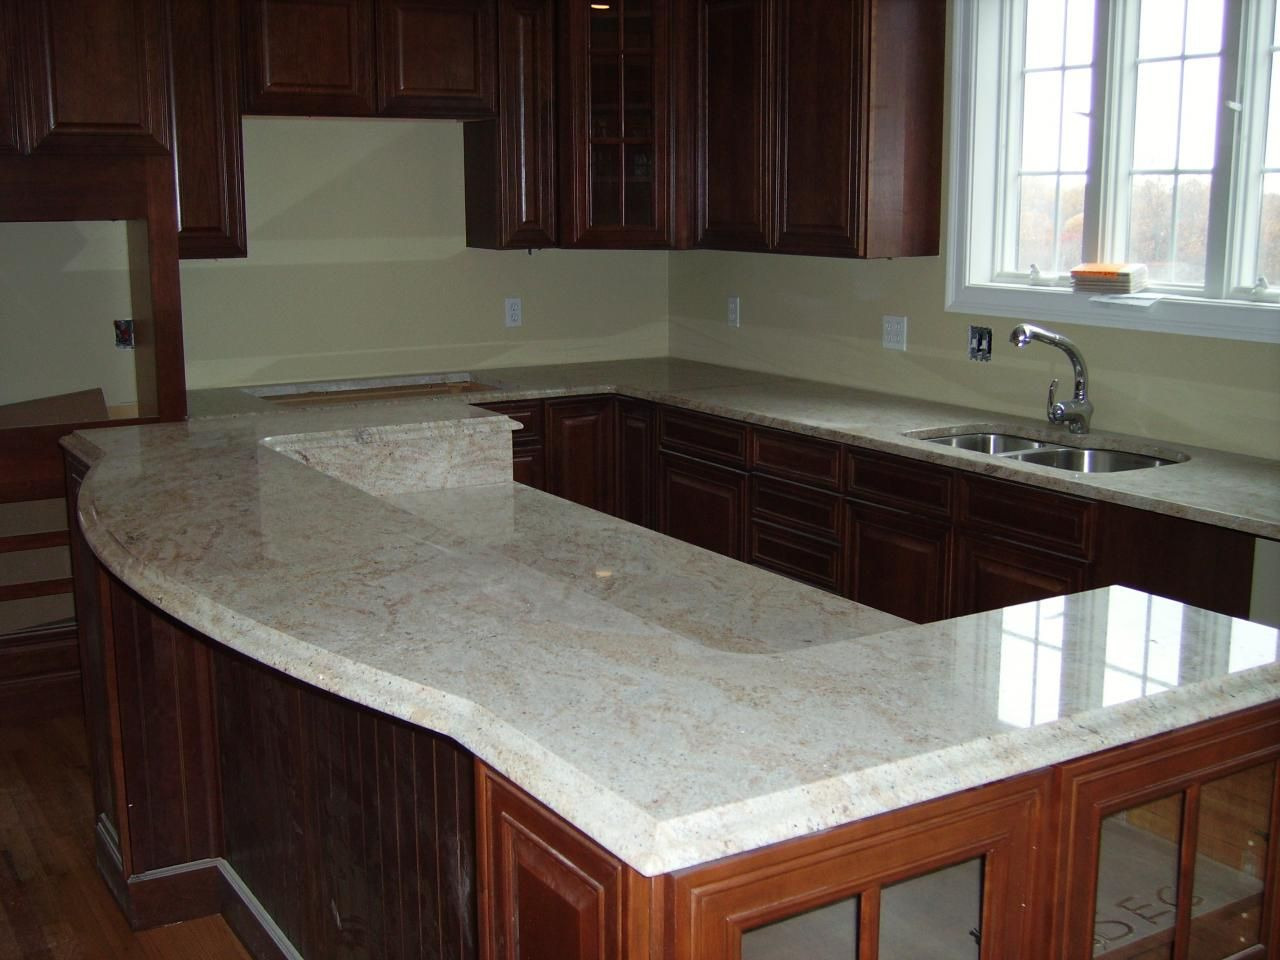 Merveilleux 55+ Granite Substitute Countertops   Apartment Kitchen Cabinet Ideas Check  More At Http:/